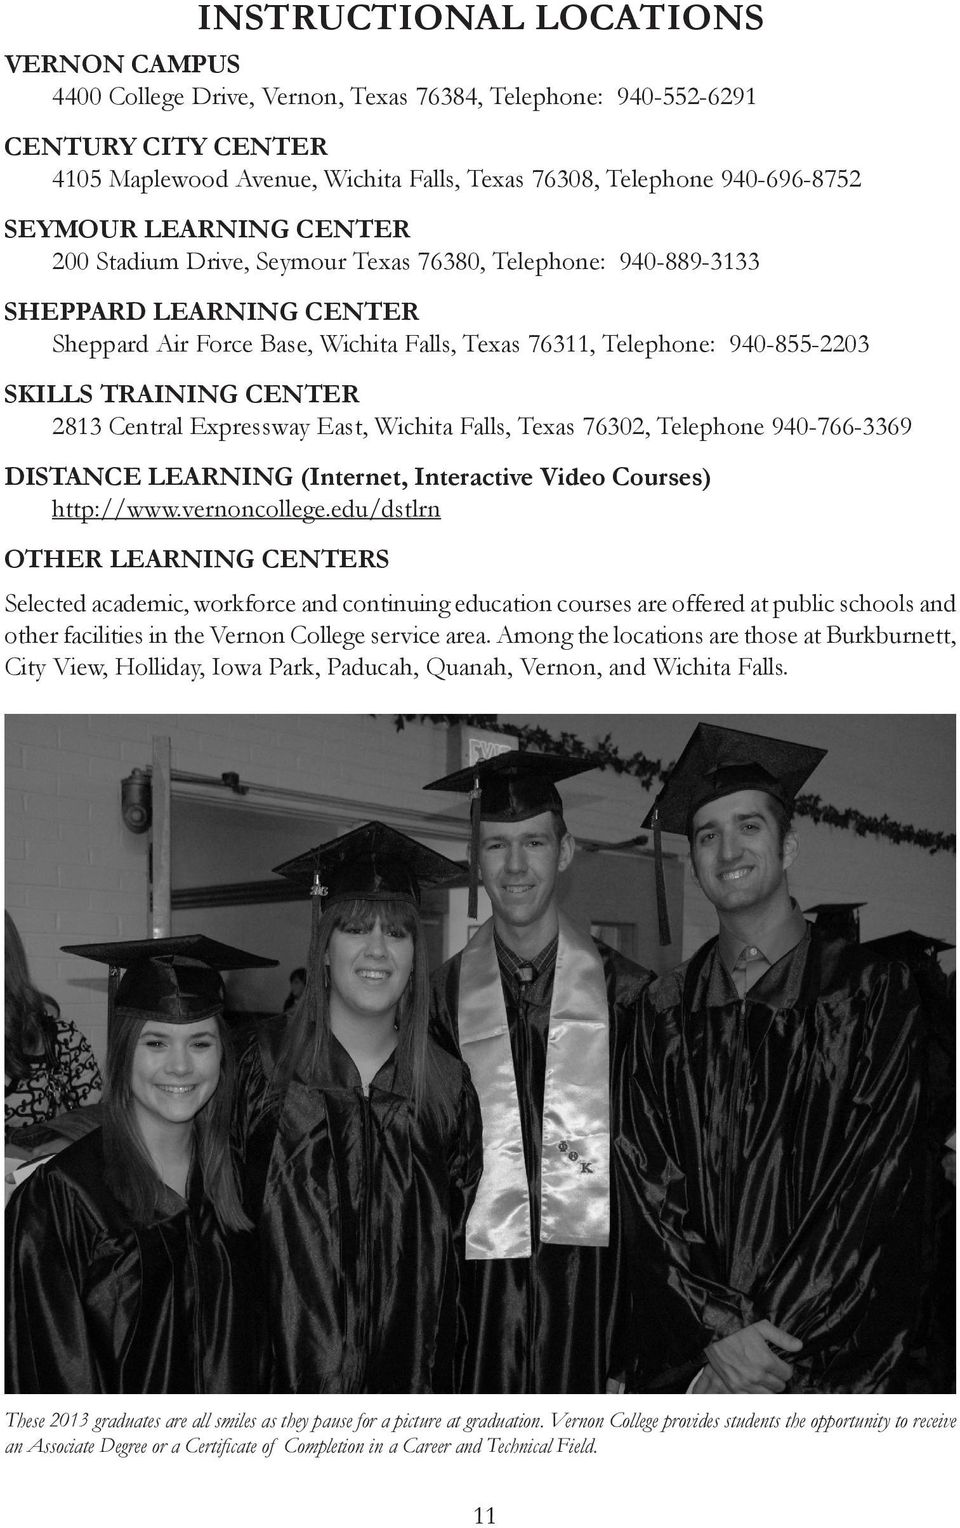 TRAINING CENTER 2813 Central Expressway East, Wichita Falls, Texas 76302, Telephone 940-766-3369 DISTANCE LEARNING (Internet, Interactive Video Courses) http://www.vernoncollege.